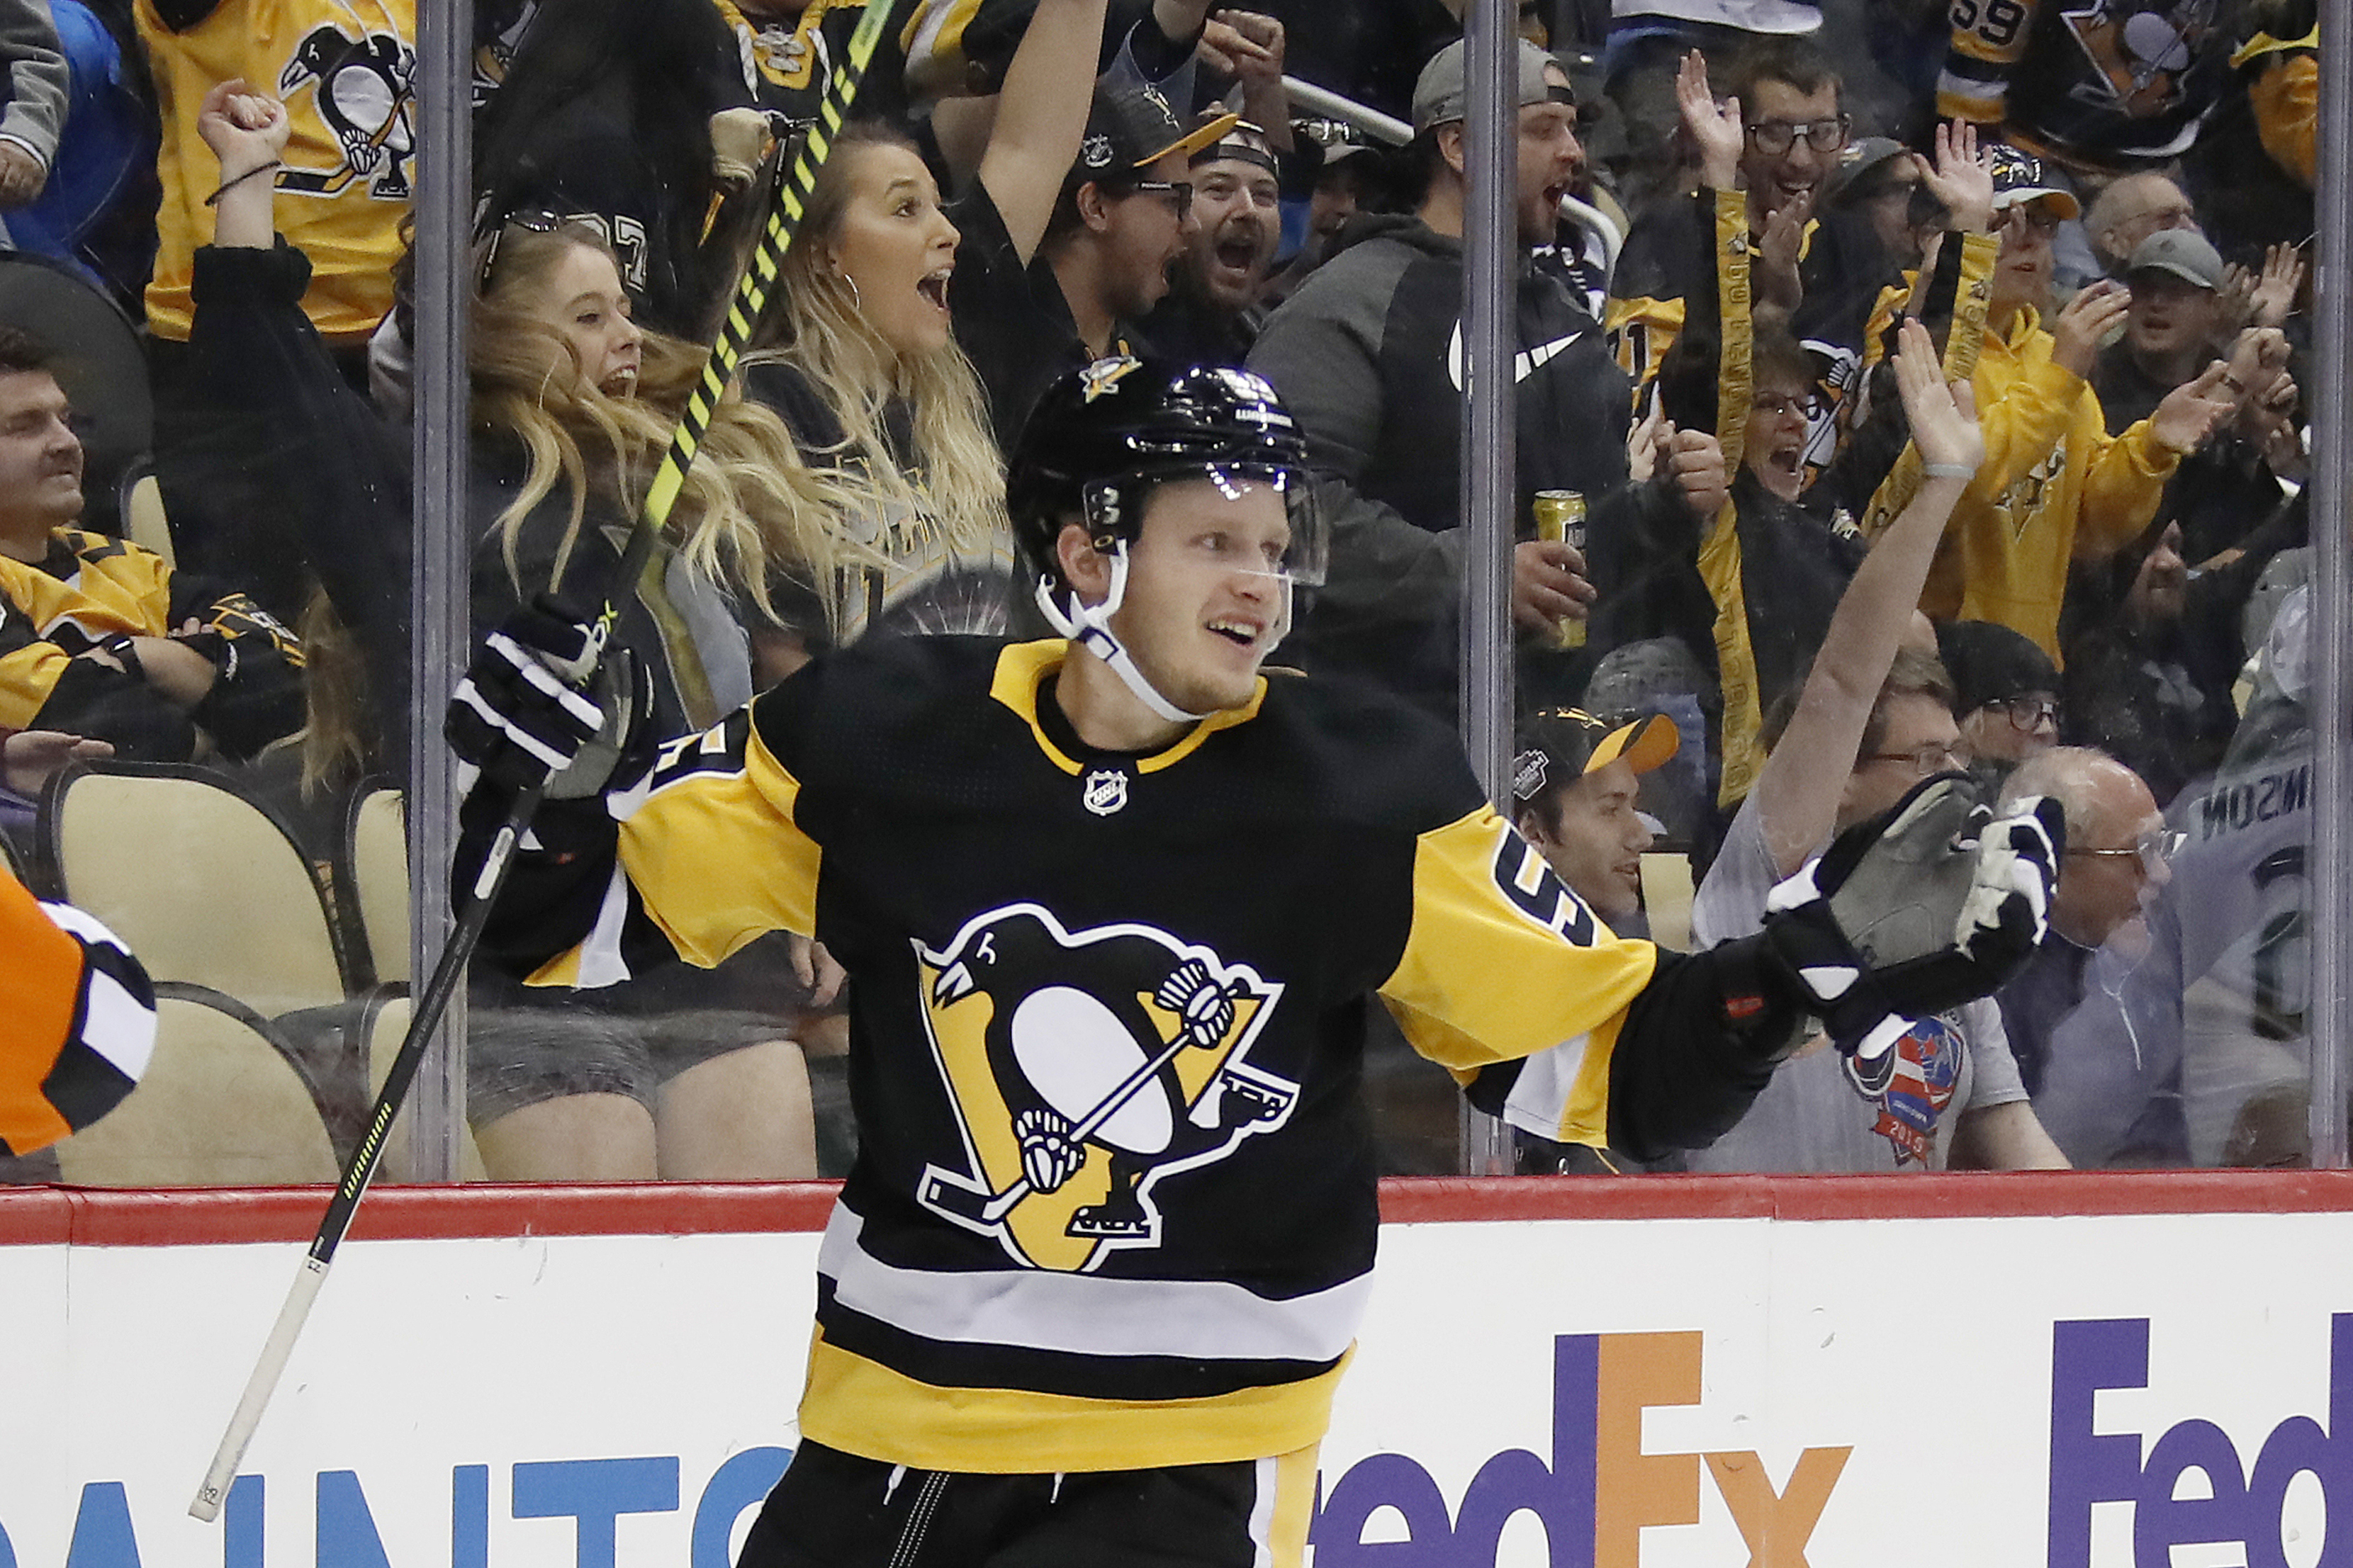 Jake's Back: Pause opens door for Pens' All-Star Guentzel